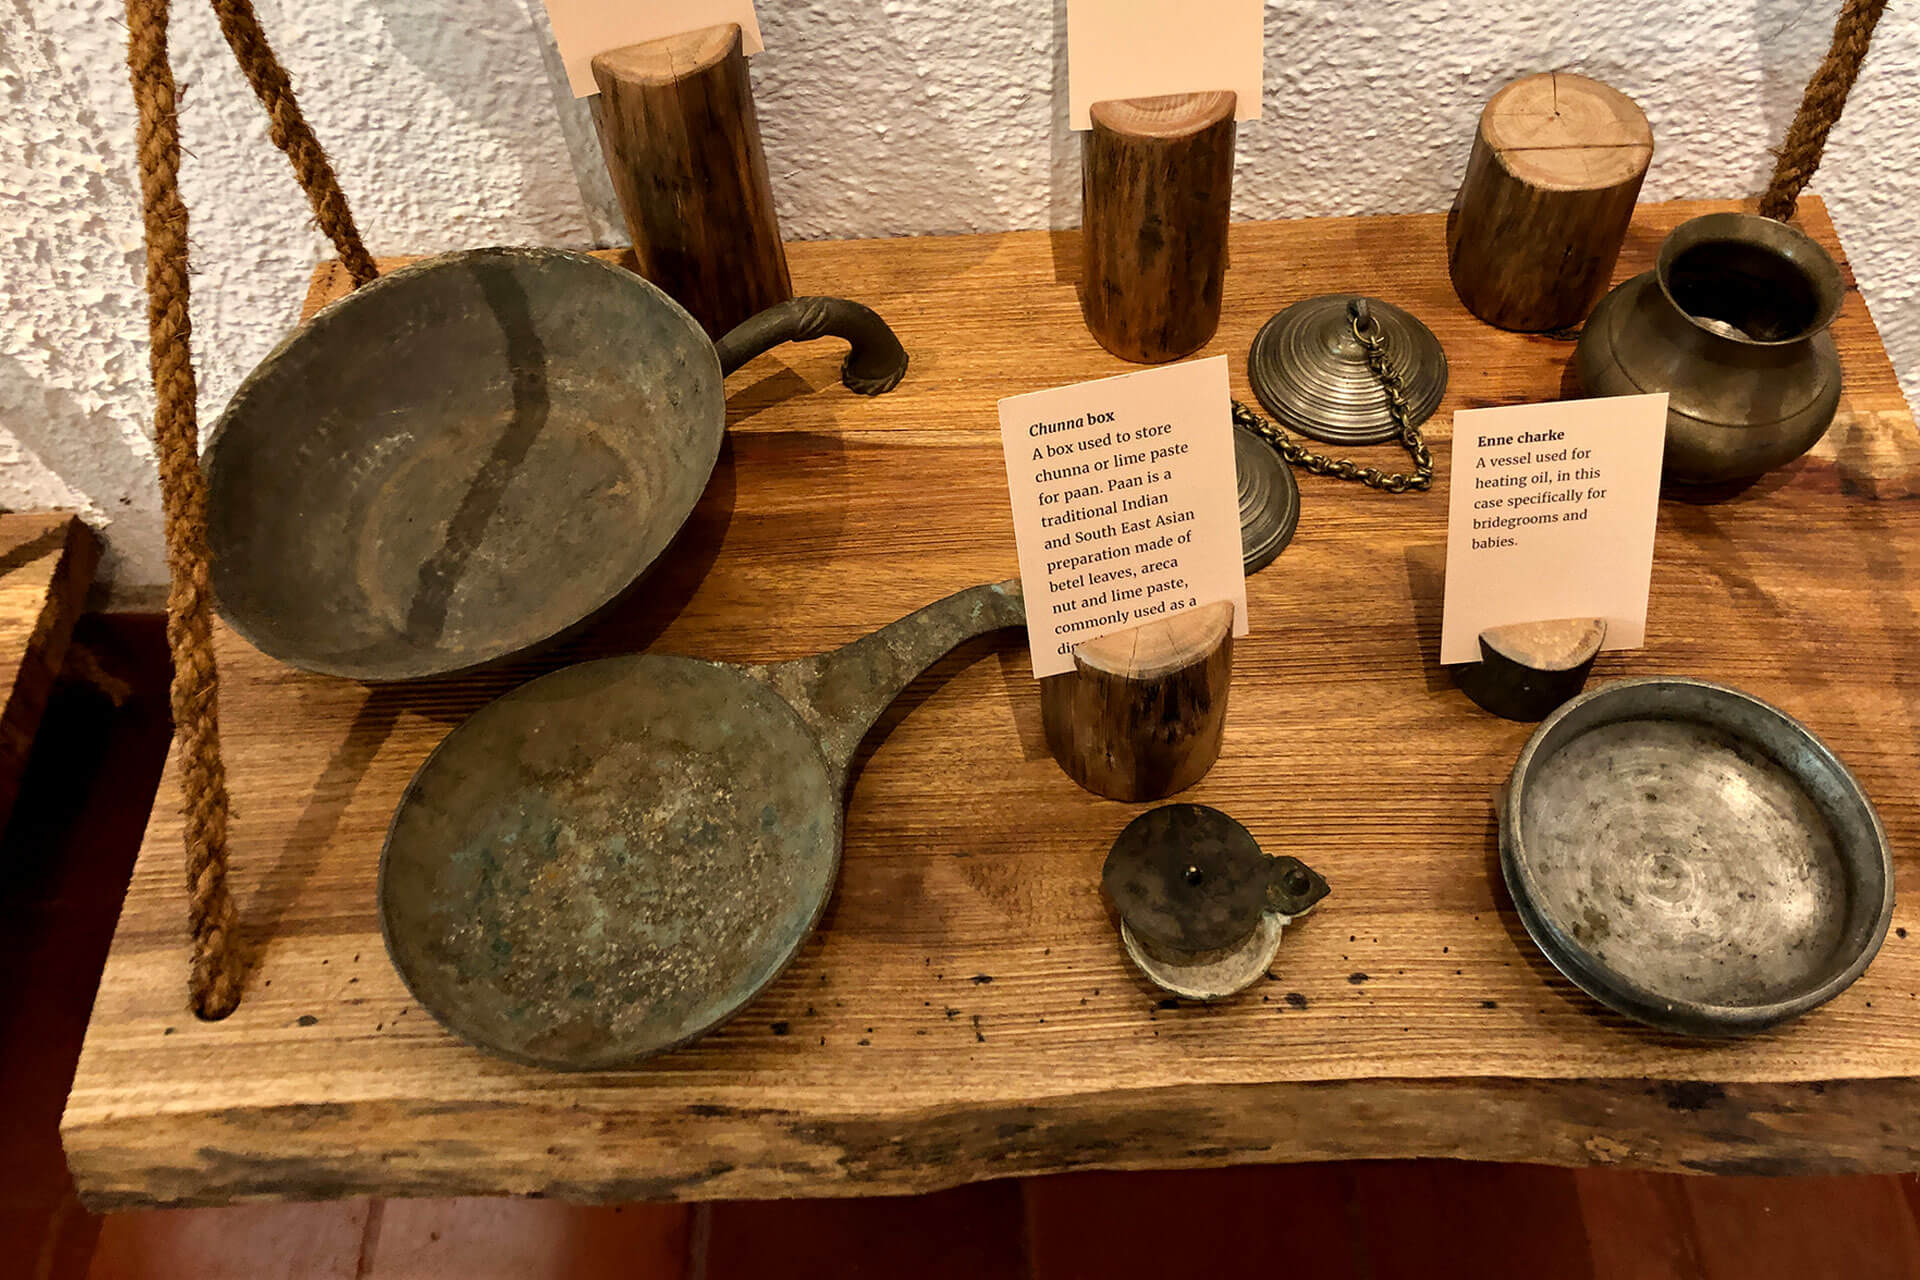 Old artefacts on display at the Sidapur Museum of Coffee & Culture